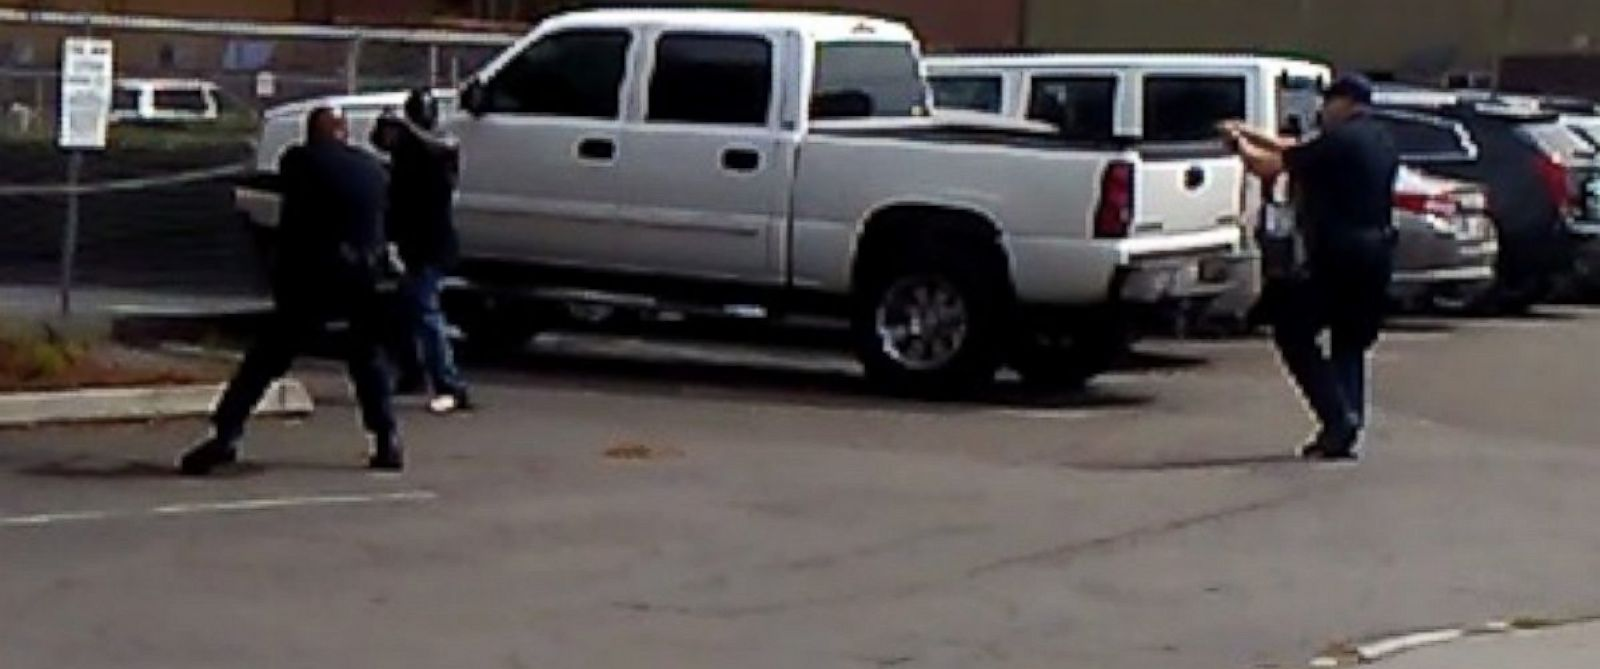 Image result for Police in California city fatally shot a black man